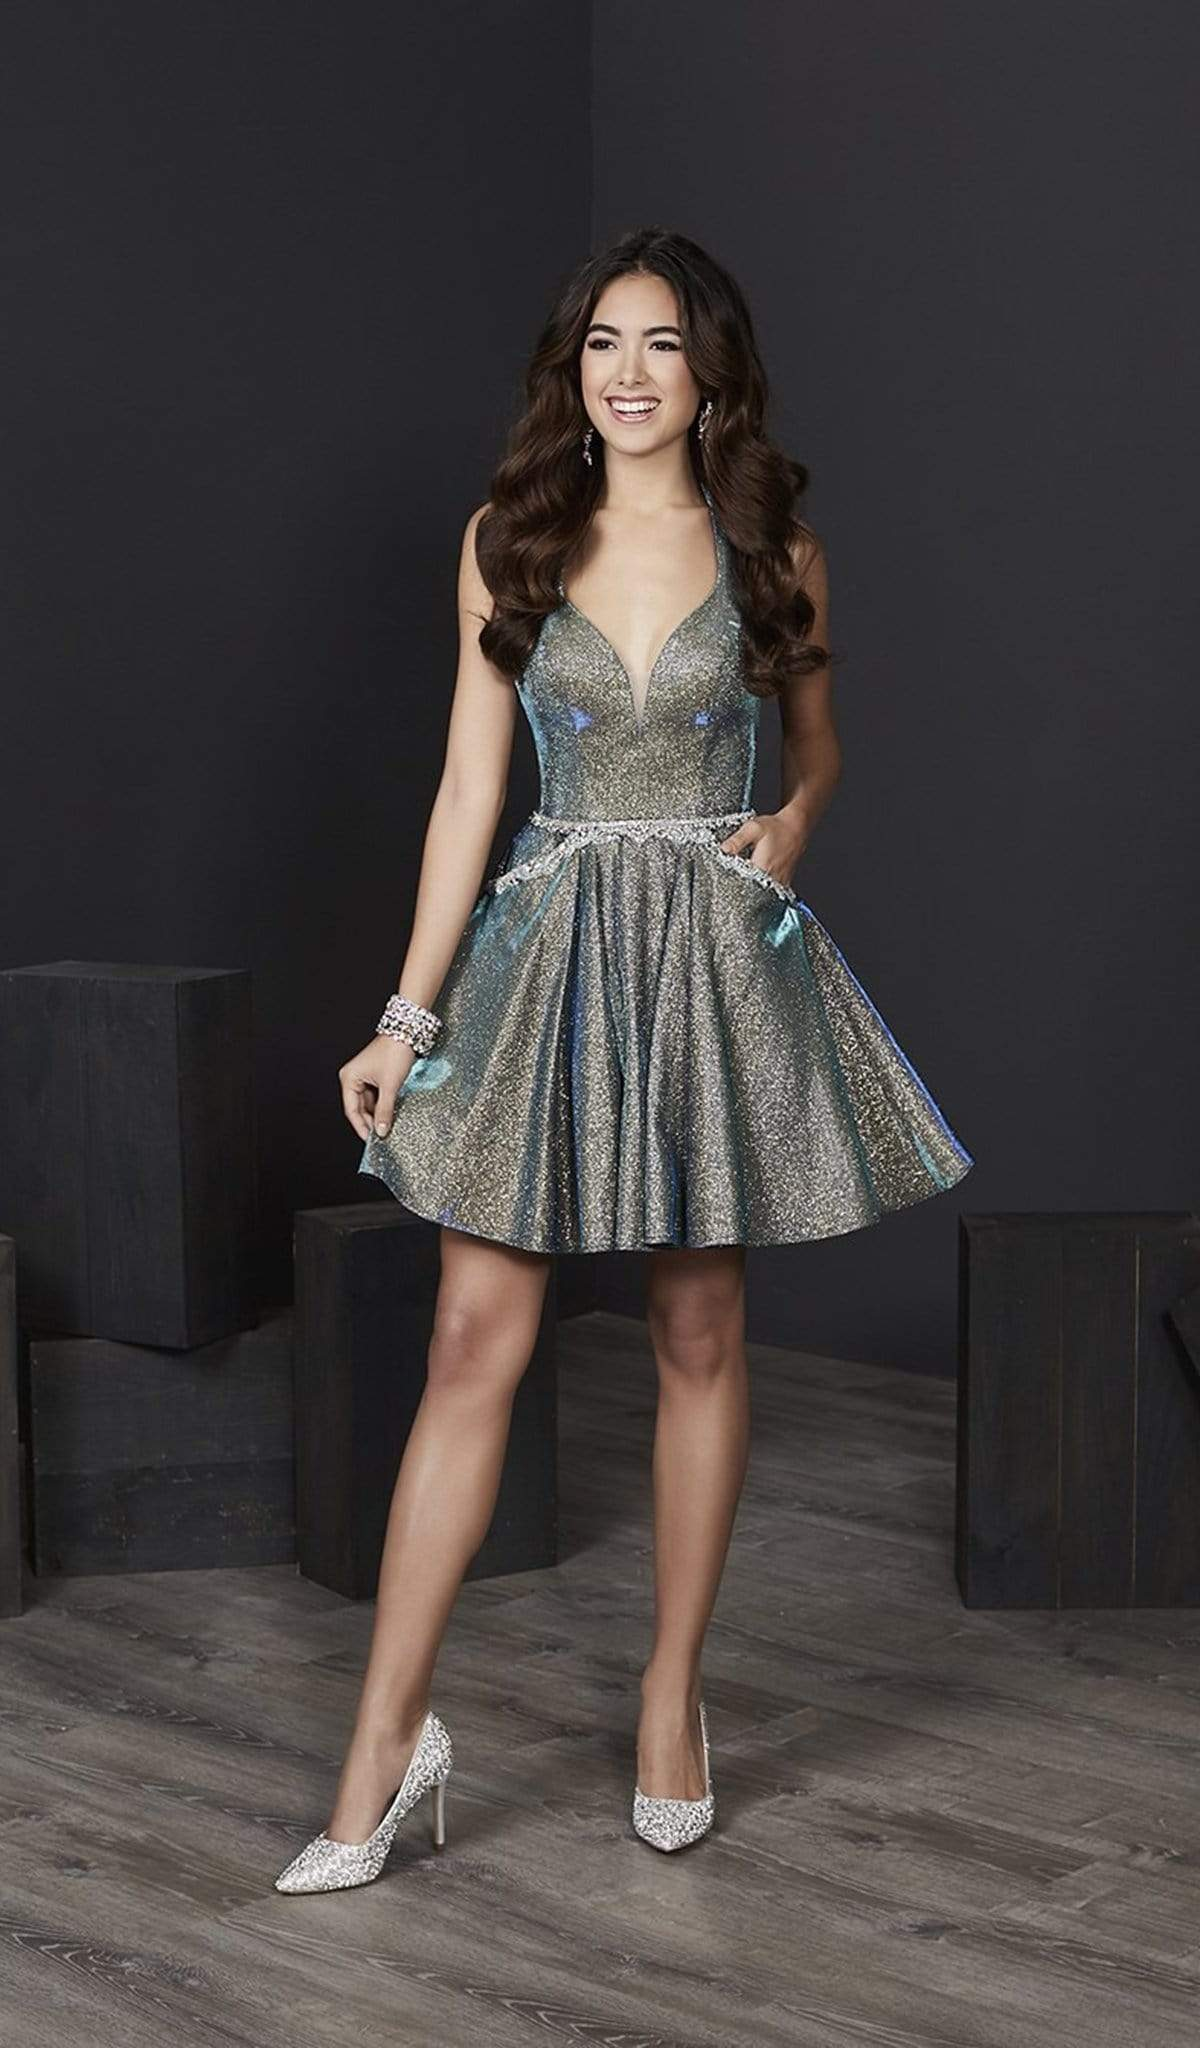 Tiffany Homecoming - 27206 Halter V-neck Sparkle Satin A-line Dress from Tiffany Homecoming